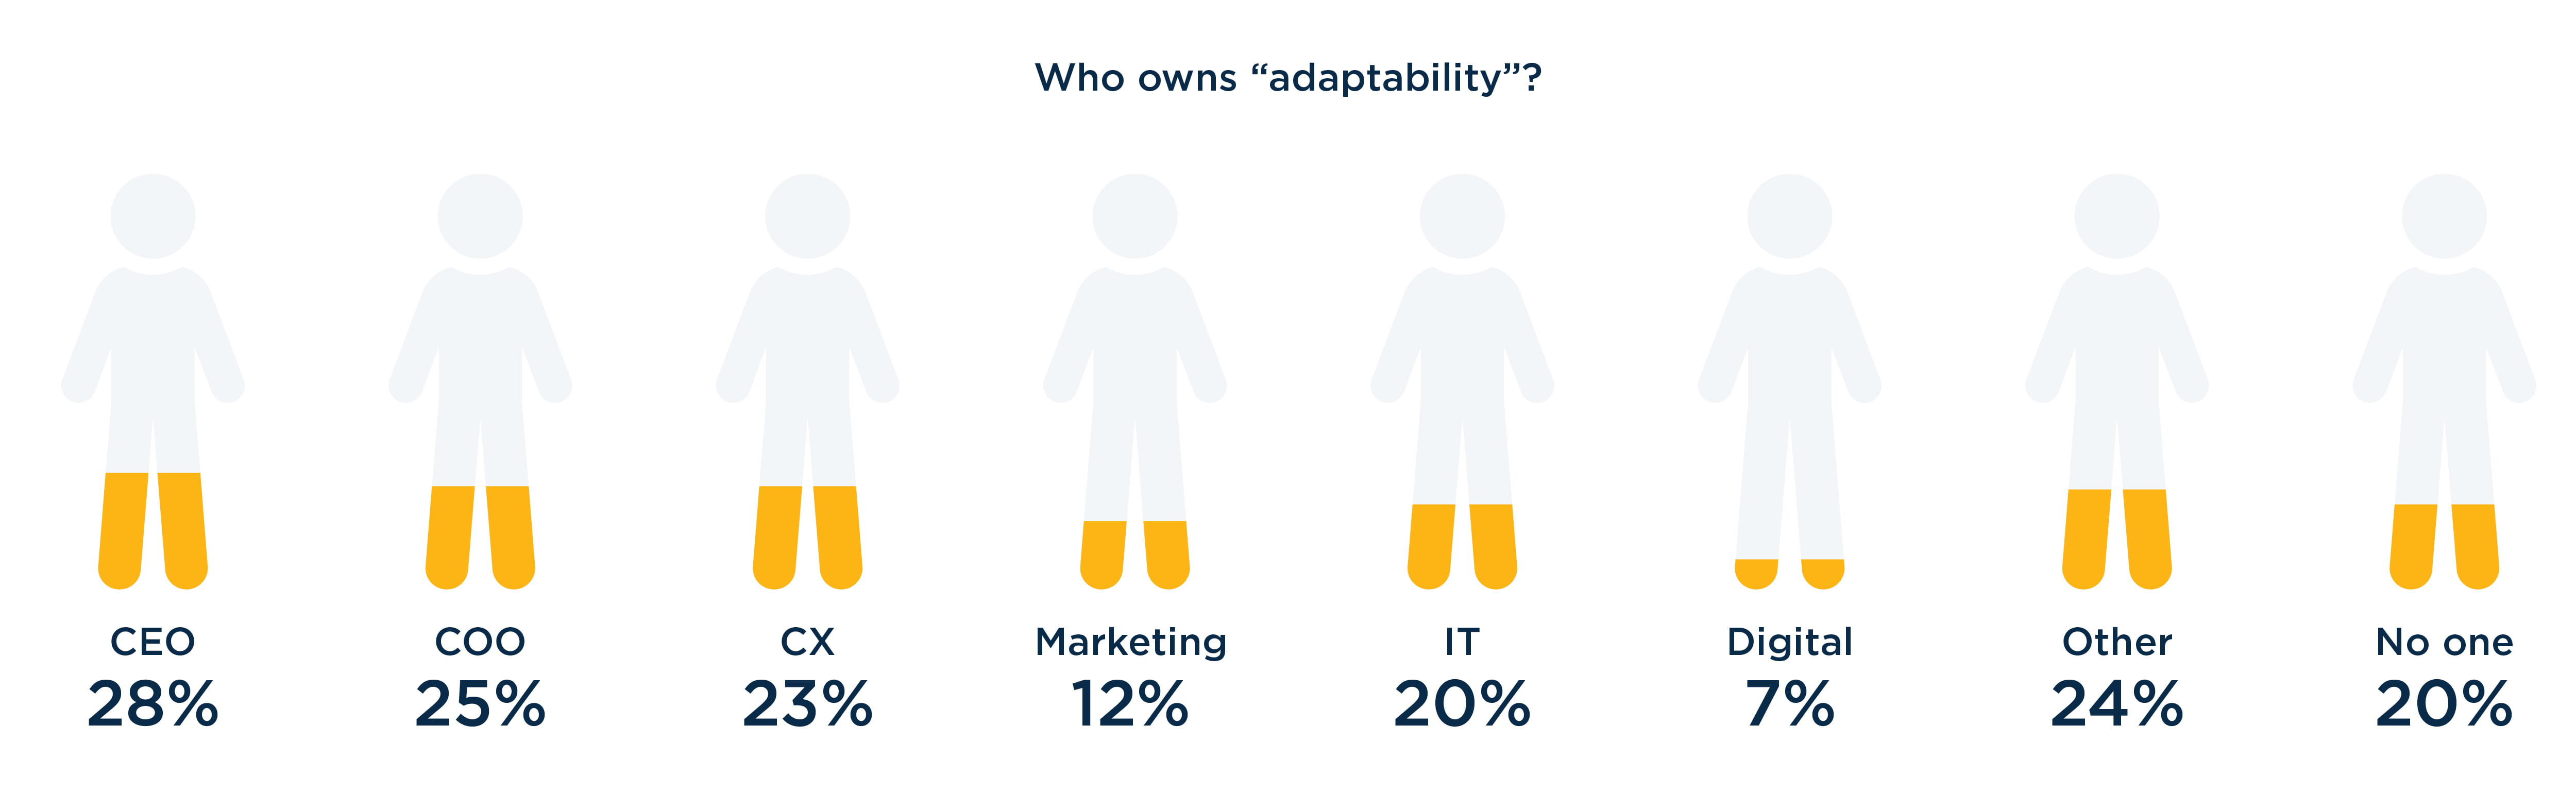 who own's adaptability